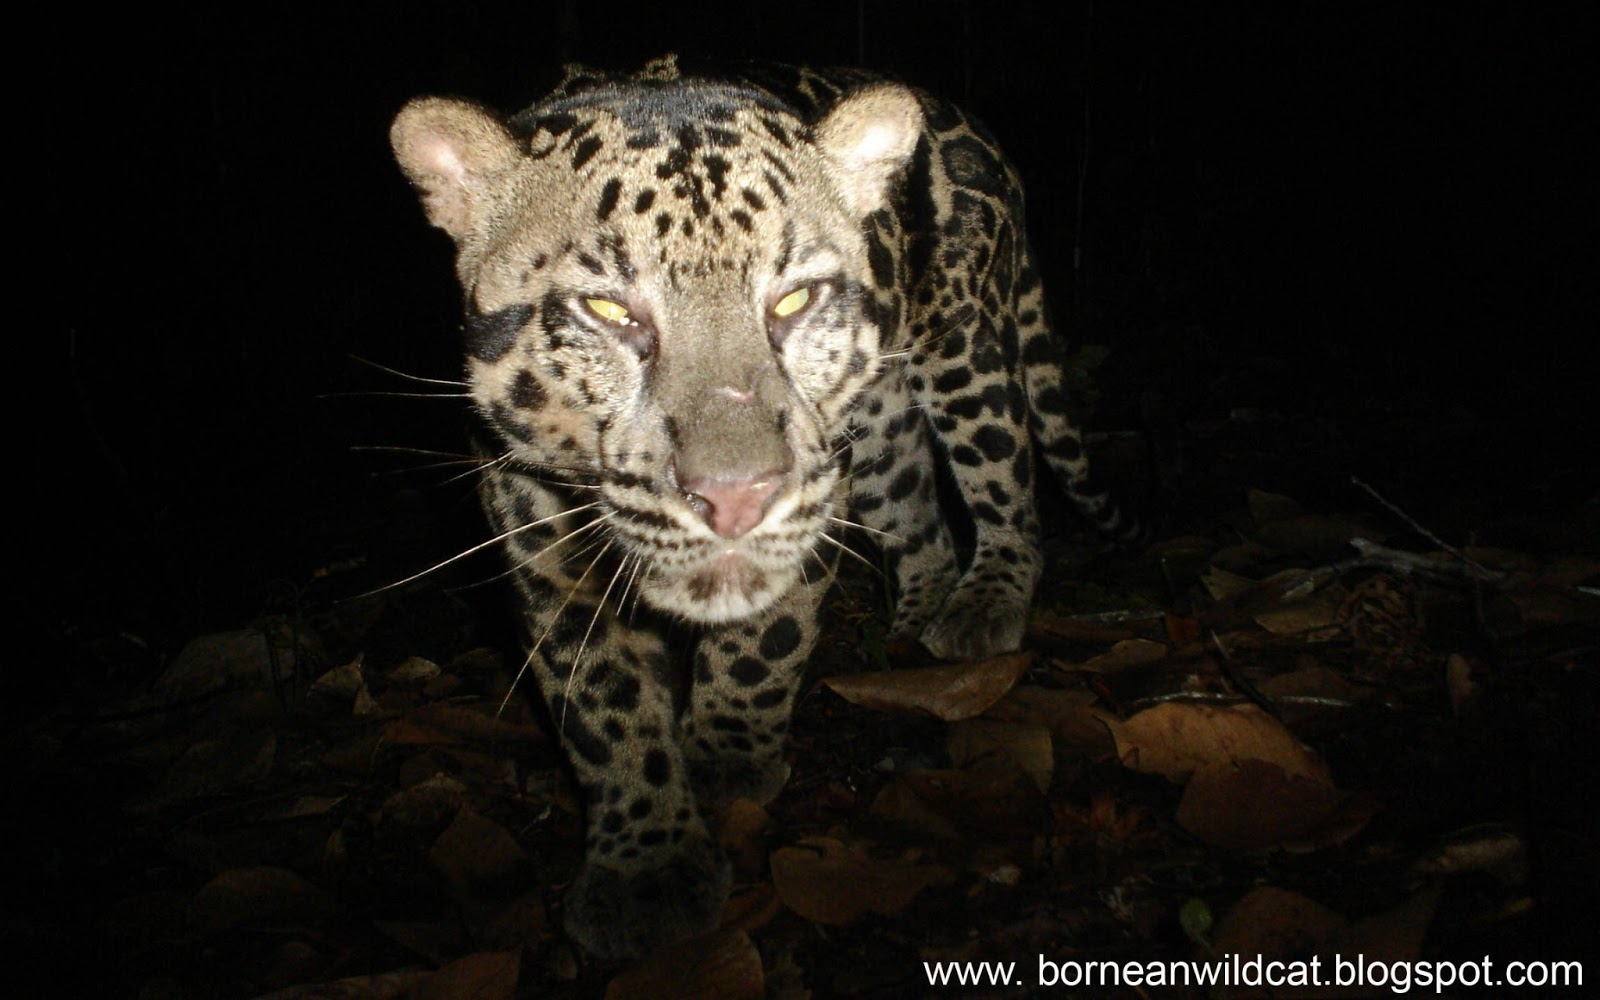 The Bornean Tiger Speculation on its Existence by Erik